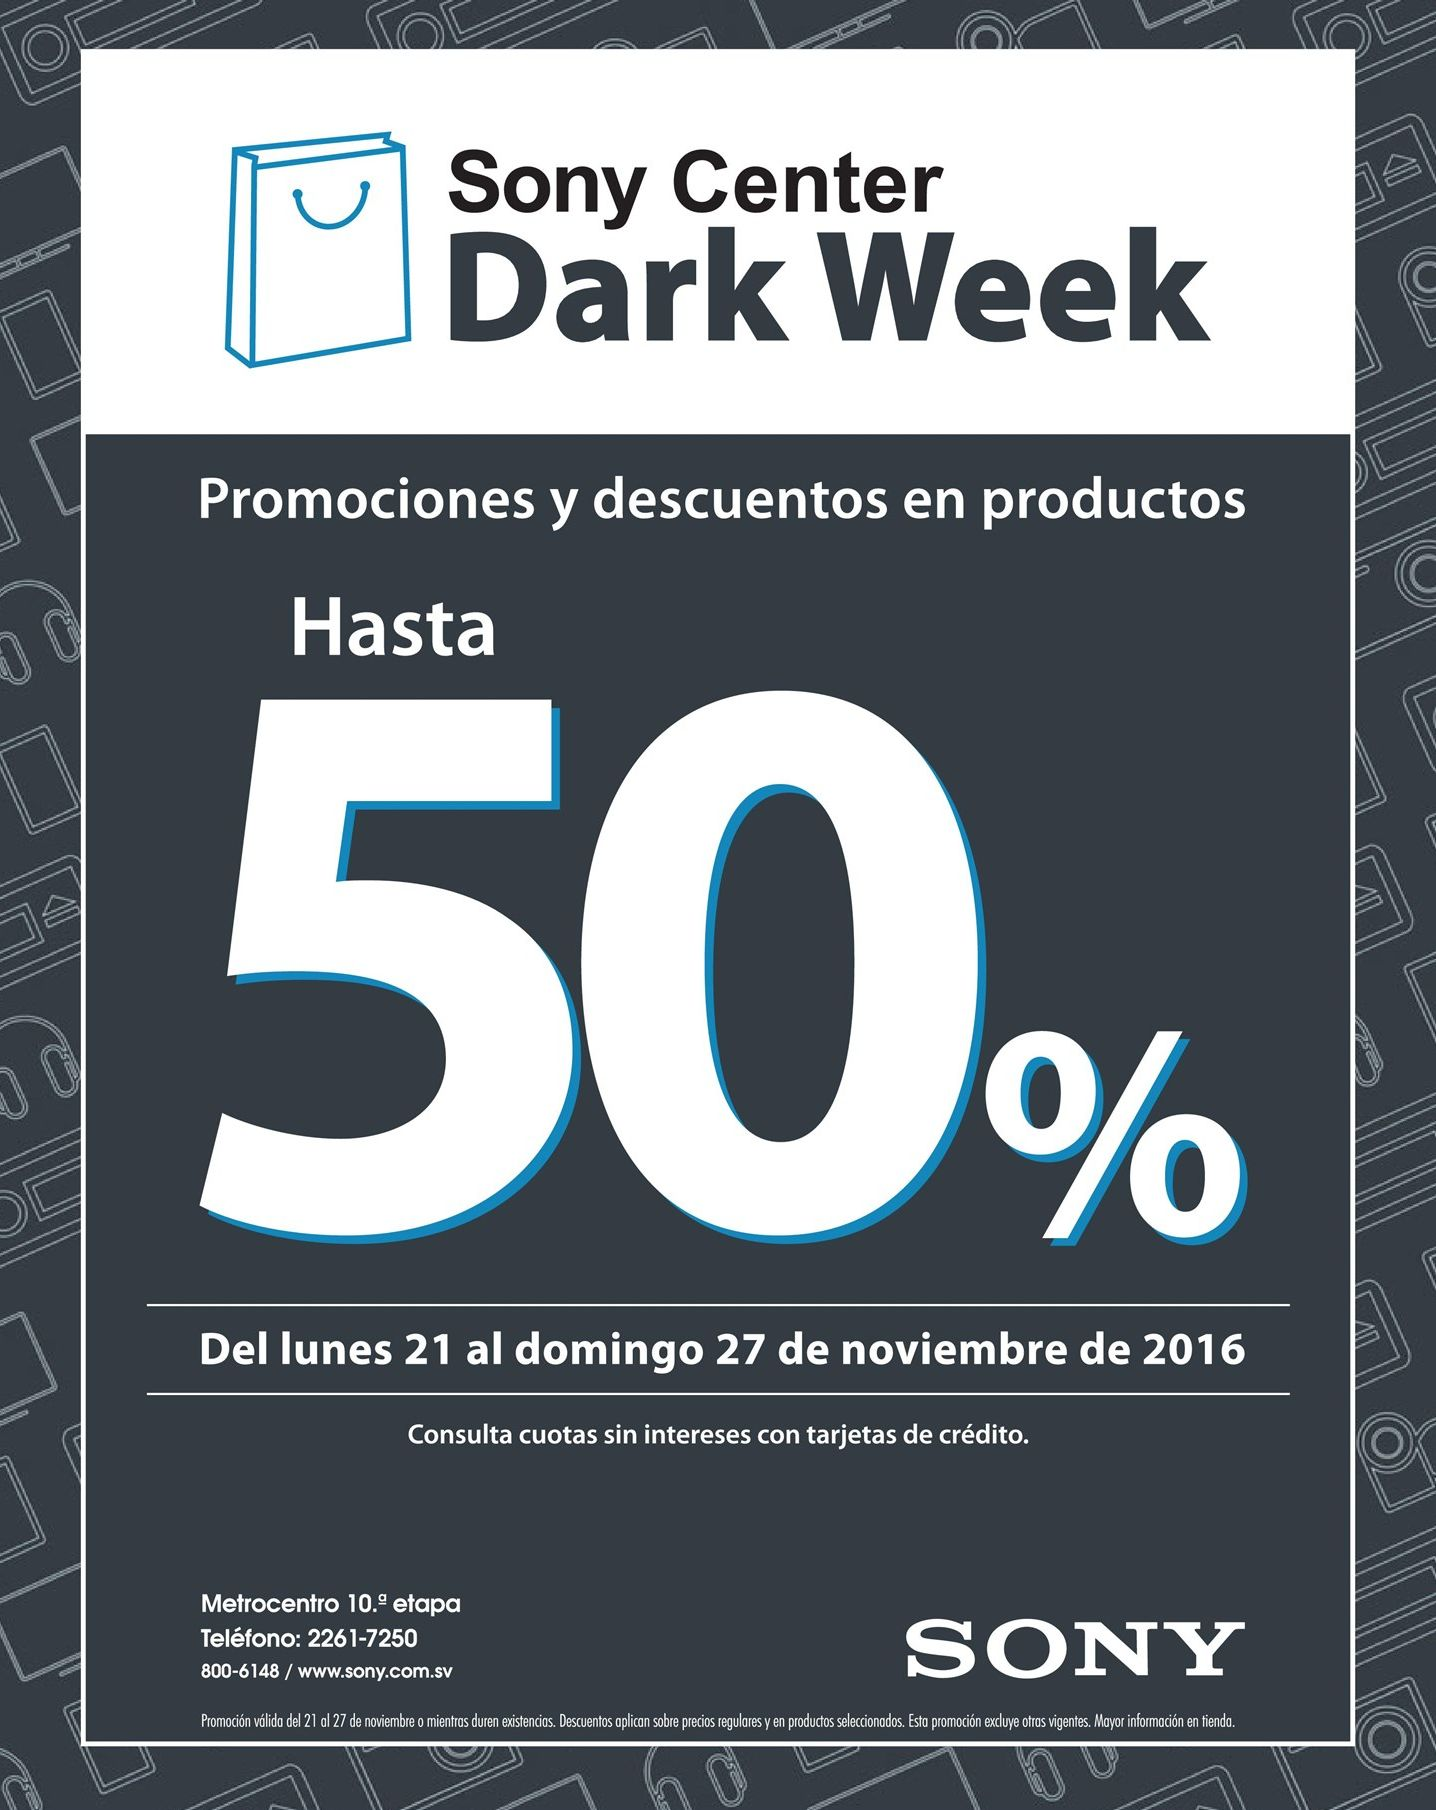 sony-center-black-dar-week-2016-descuento-50-off-hasta-el-27-nov